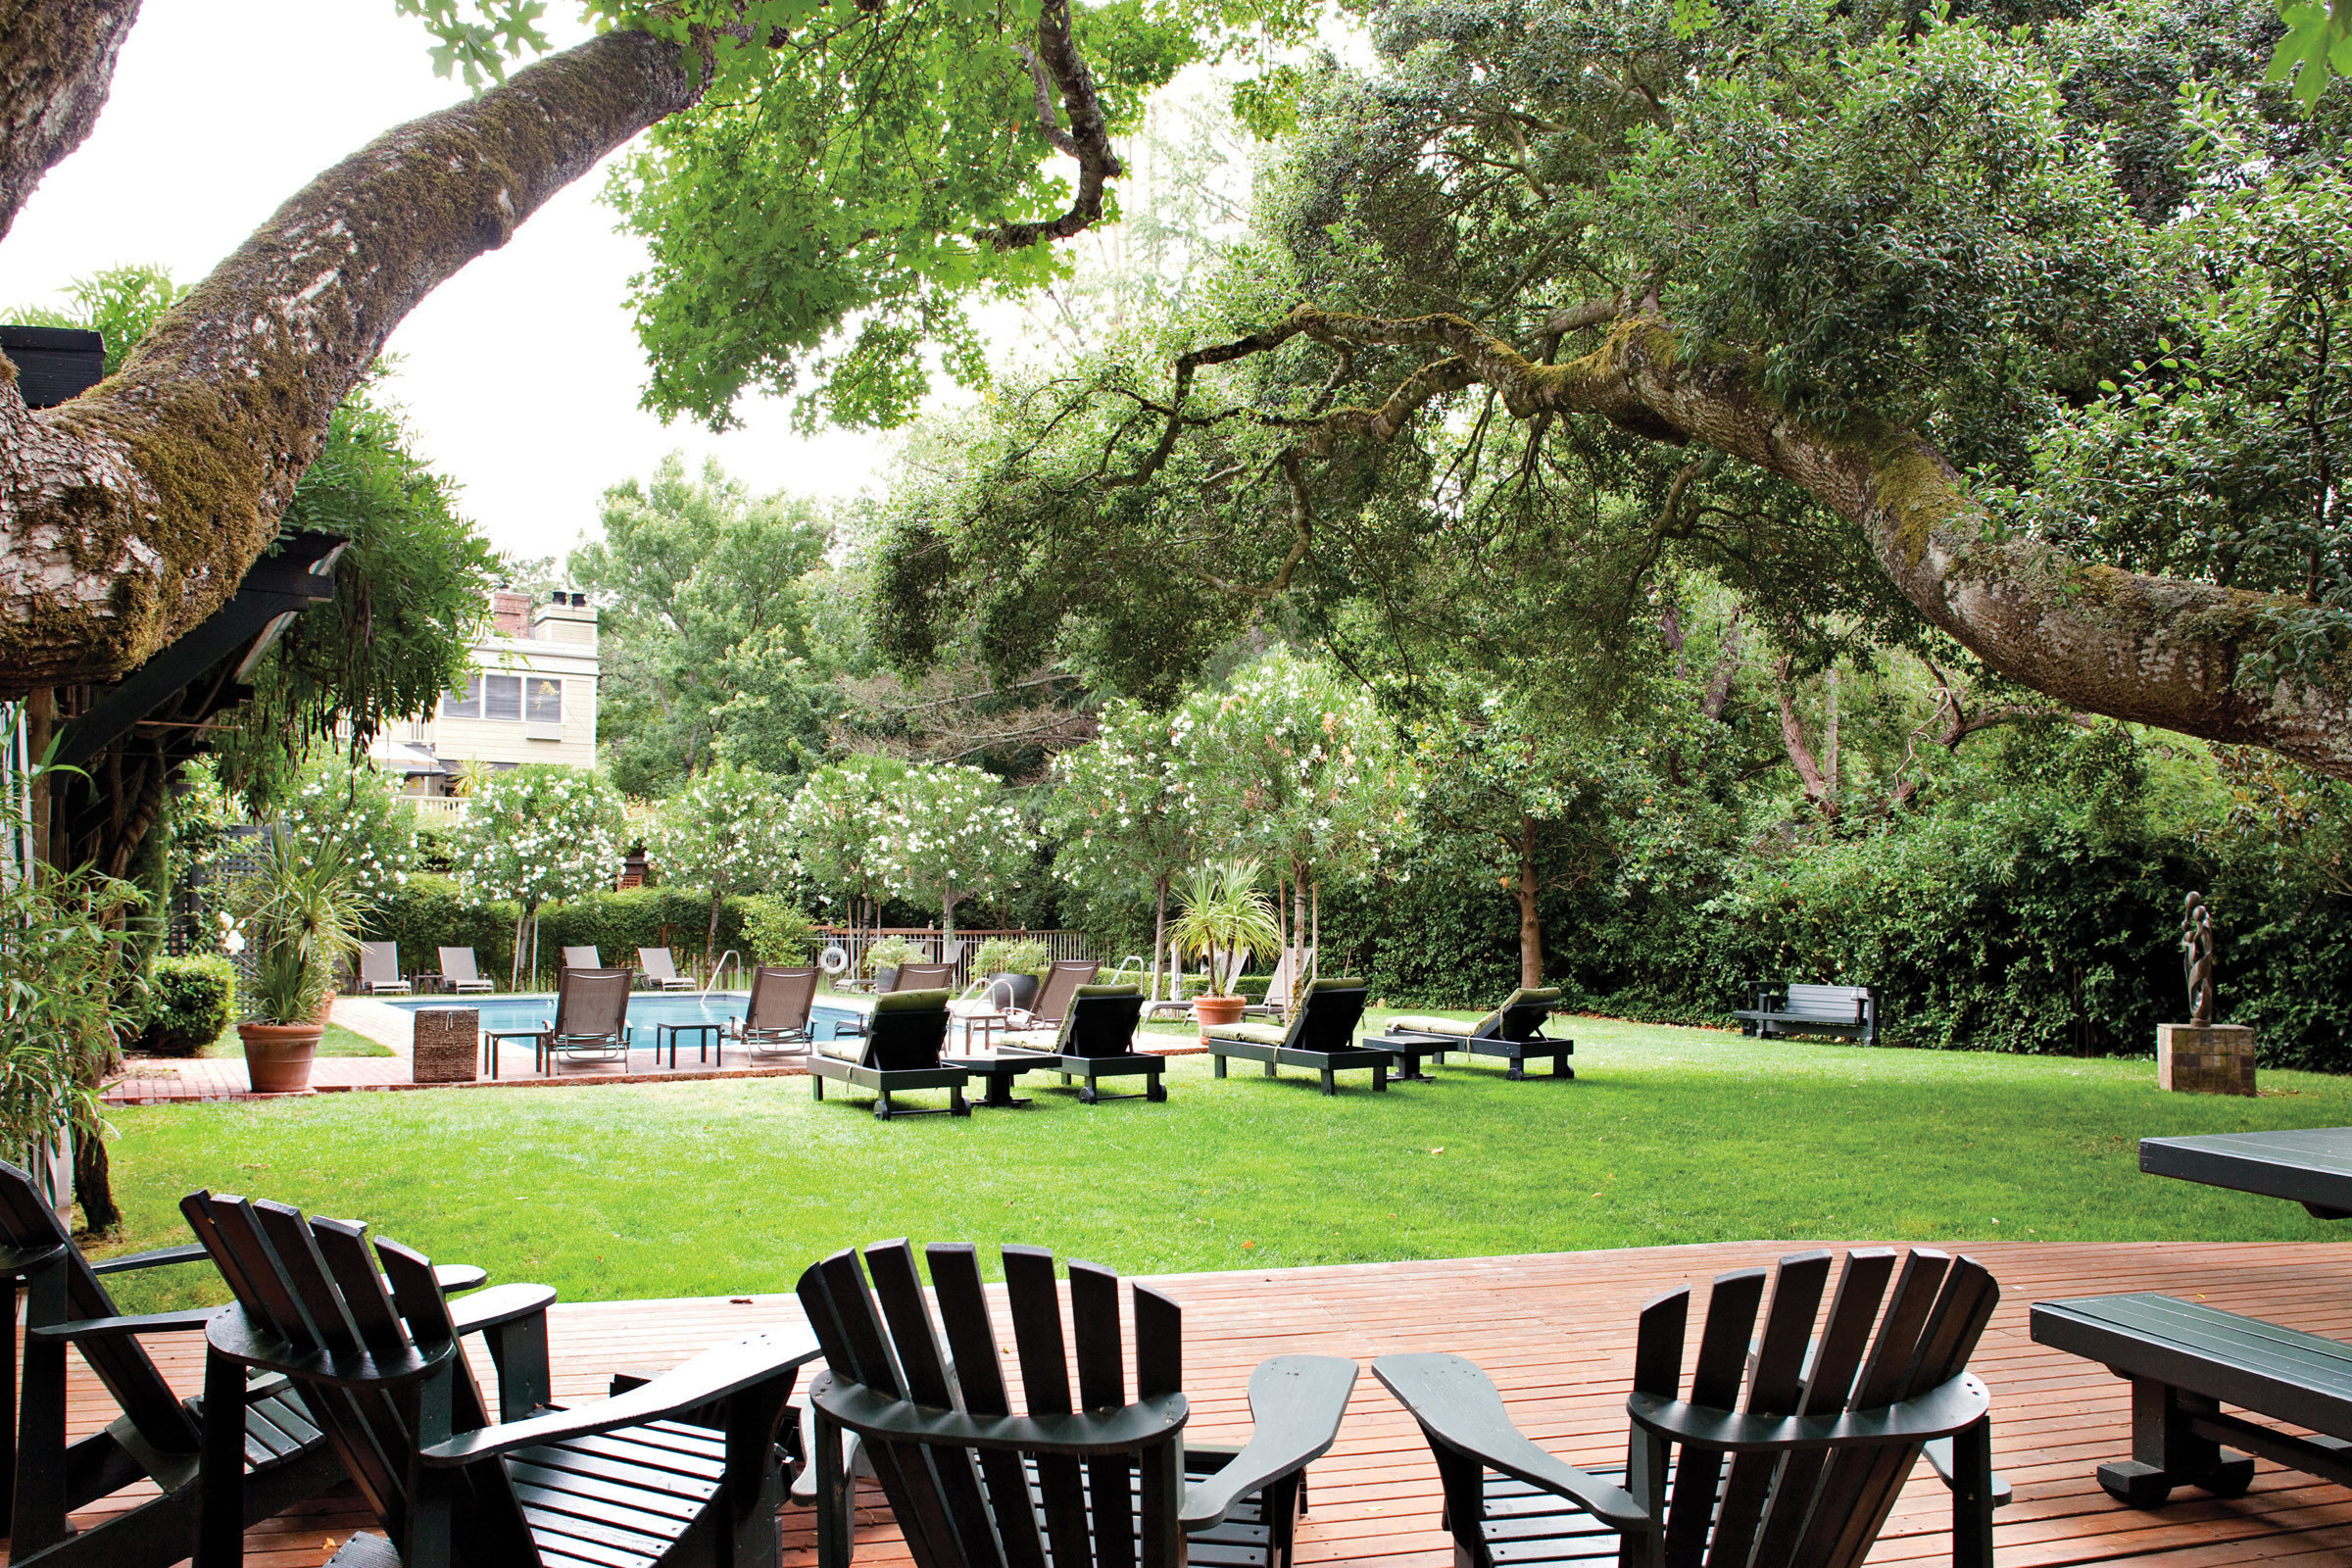 Boutique Grounds Inn Romance tree grass chair park Picnic wooden Garden backyard flower lawn plant day shade